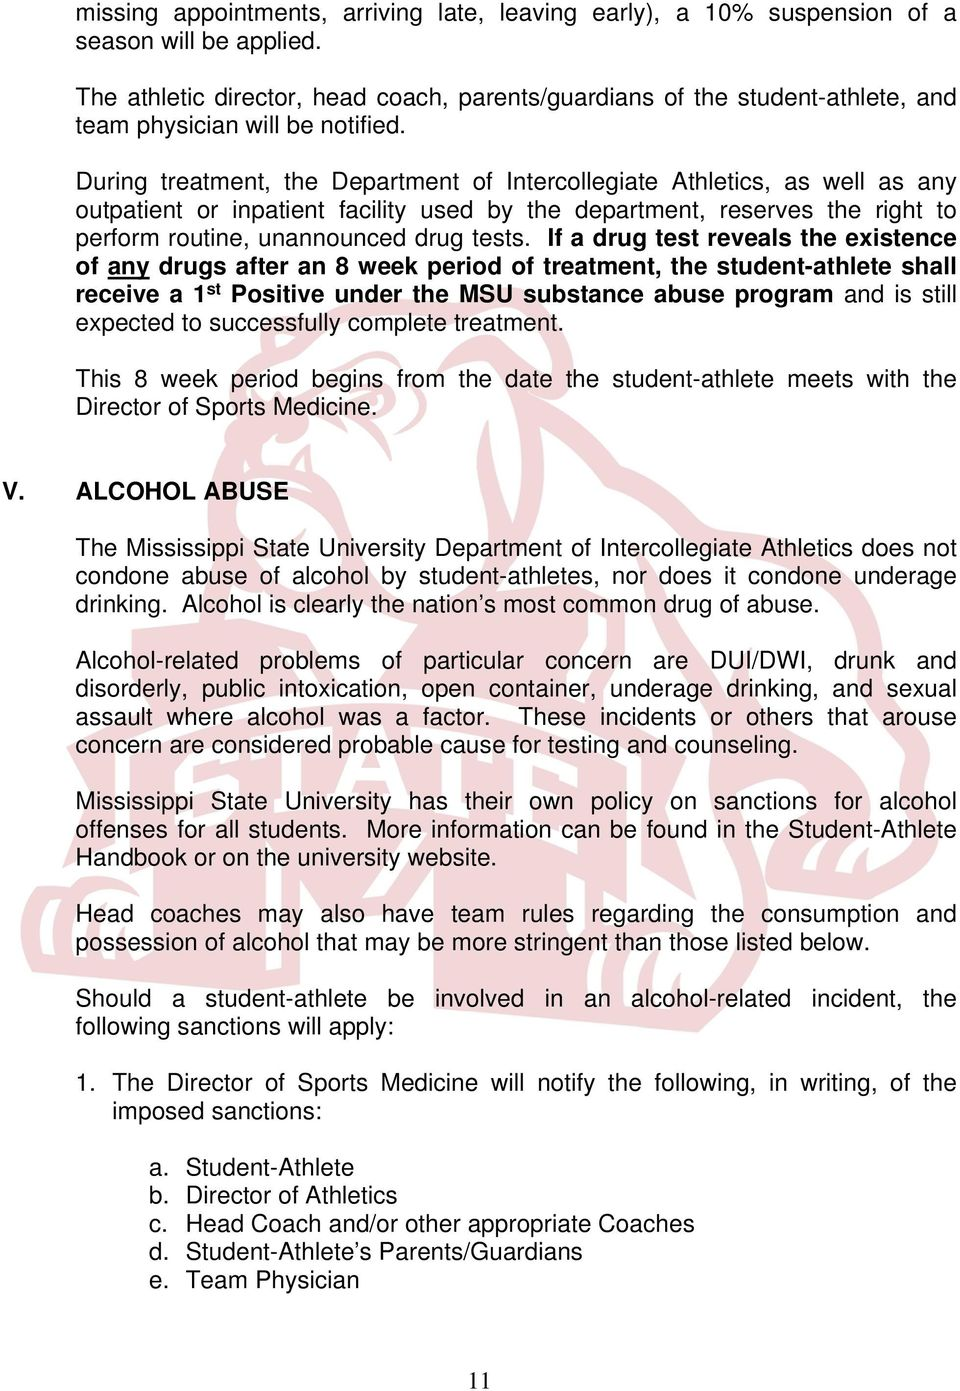 During treatment, the Department of Intercollegiate Athletics, as well as any outpatient or inpatient facility used by the department, reserves the right to perform routine, unannounced drug tests.